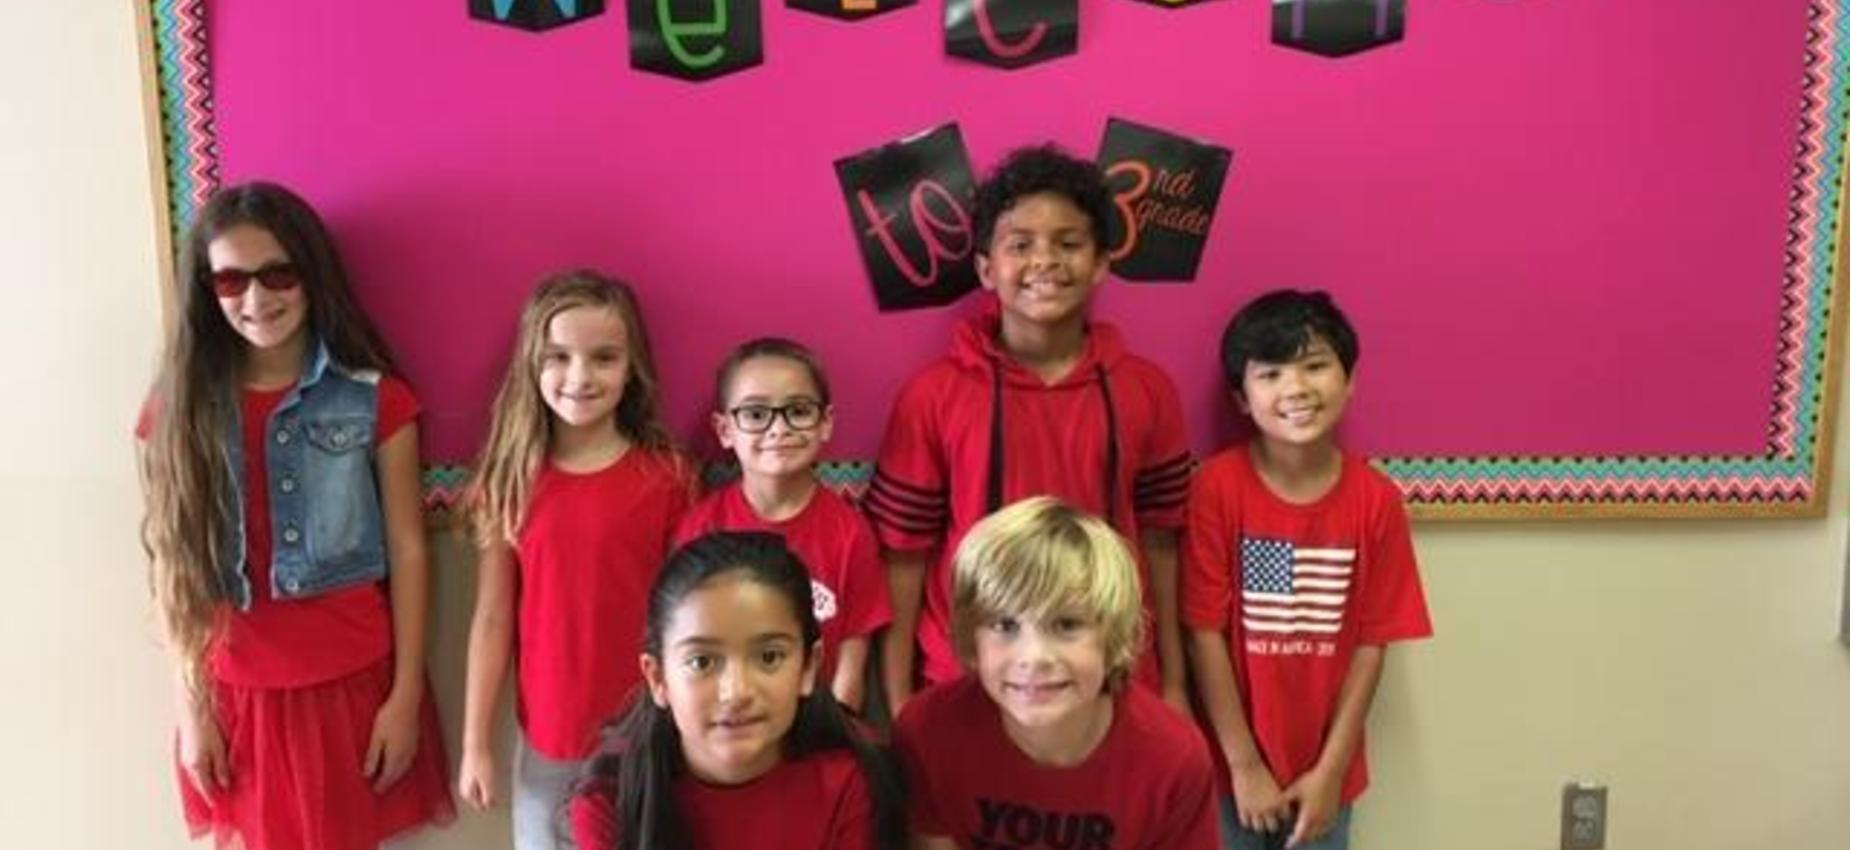 Wearing red to support Dyslexia Awareness